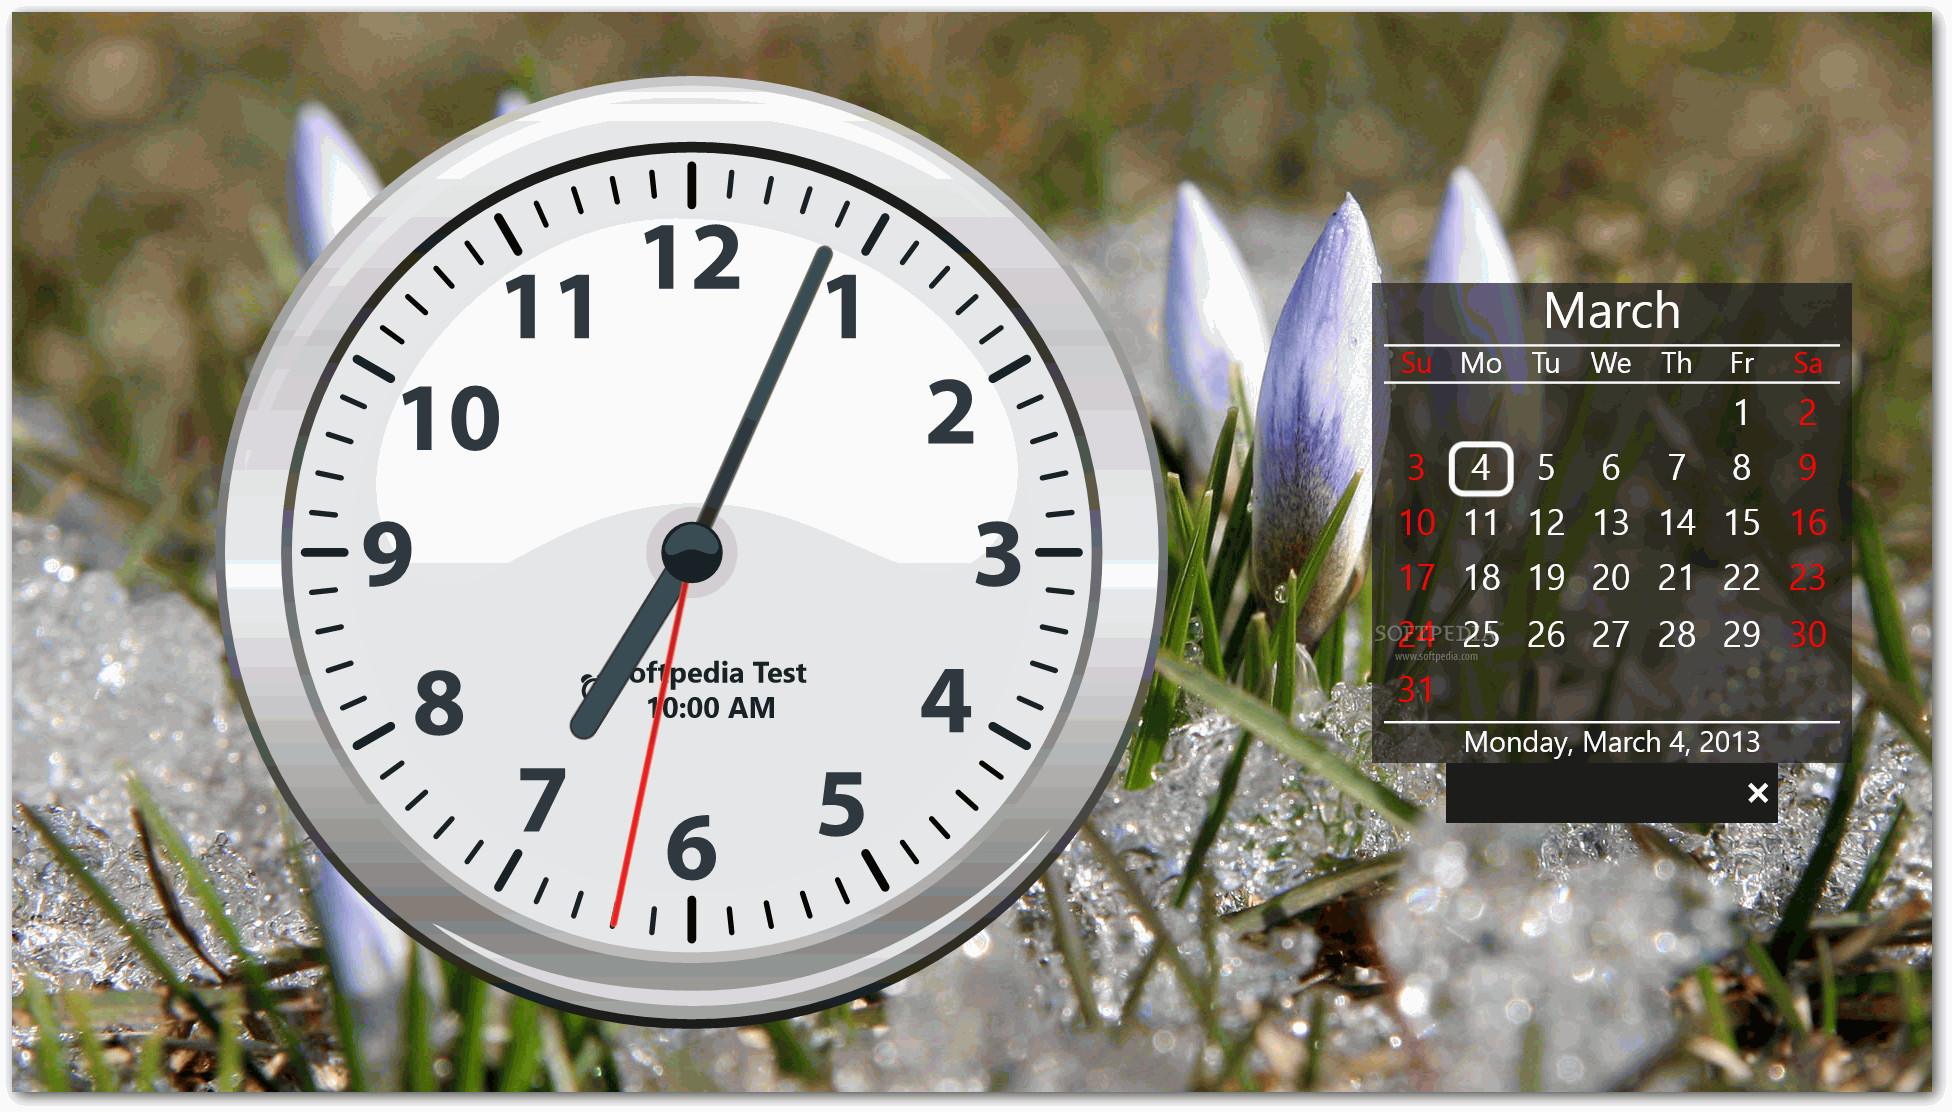 Jujuba Clock for Windows 8 is a clock and time management application .